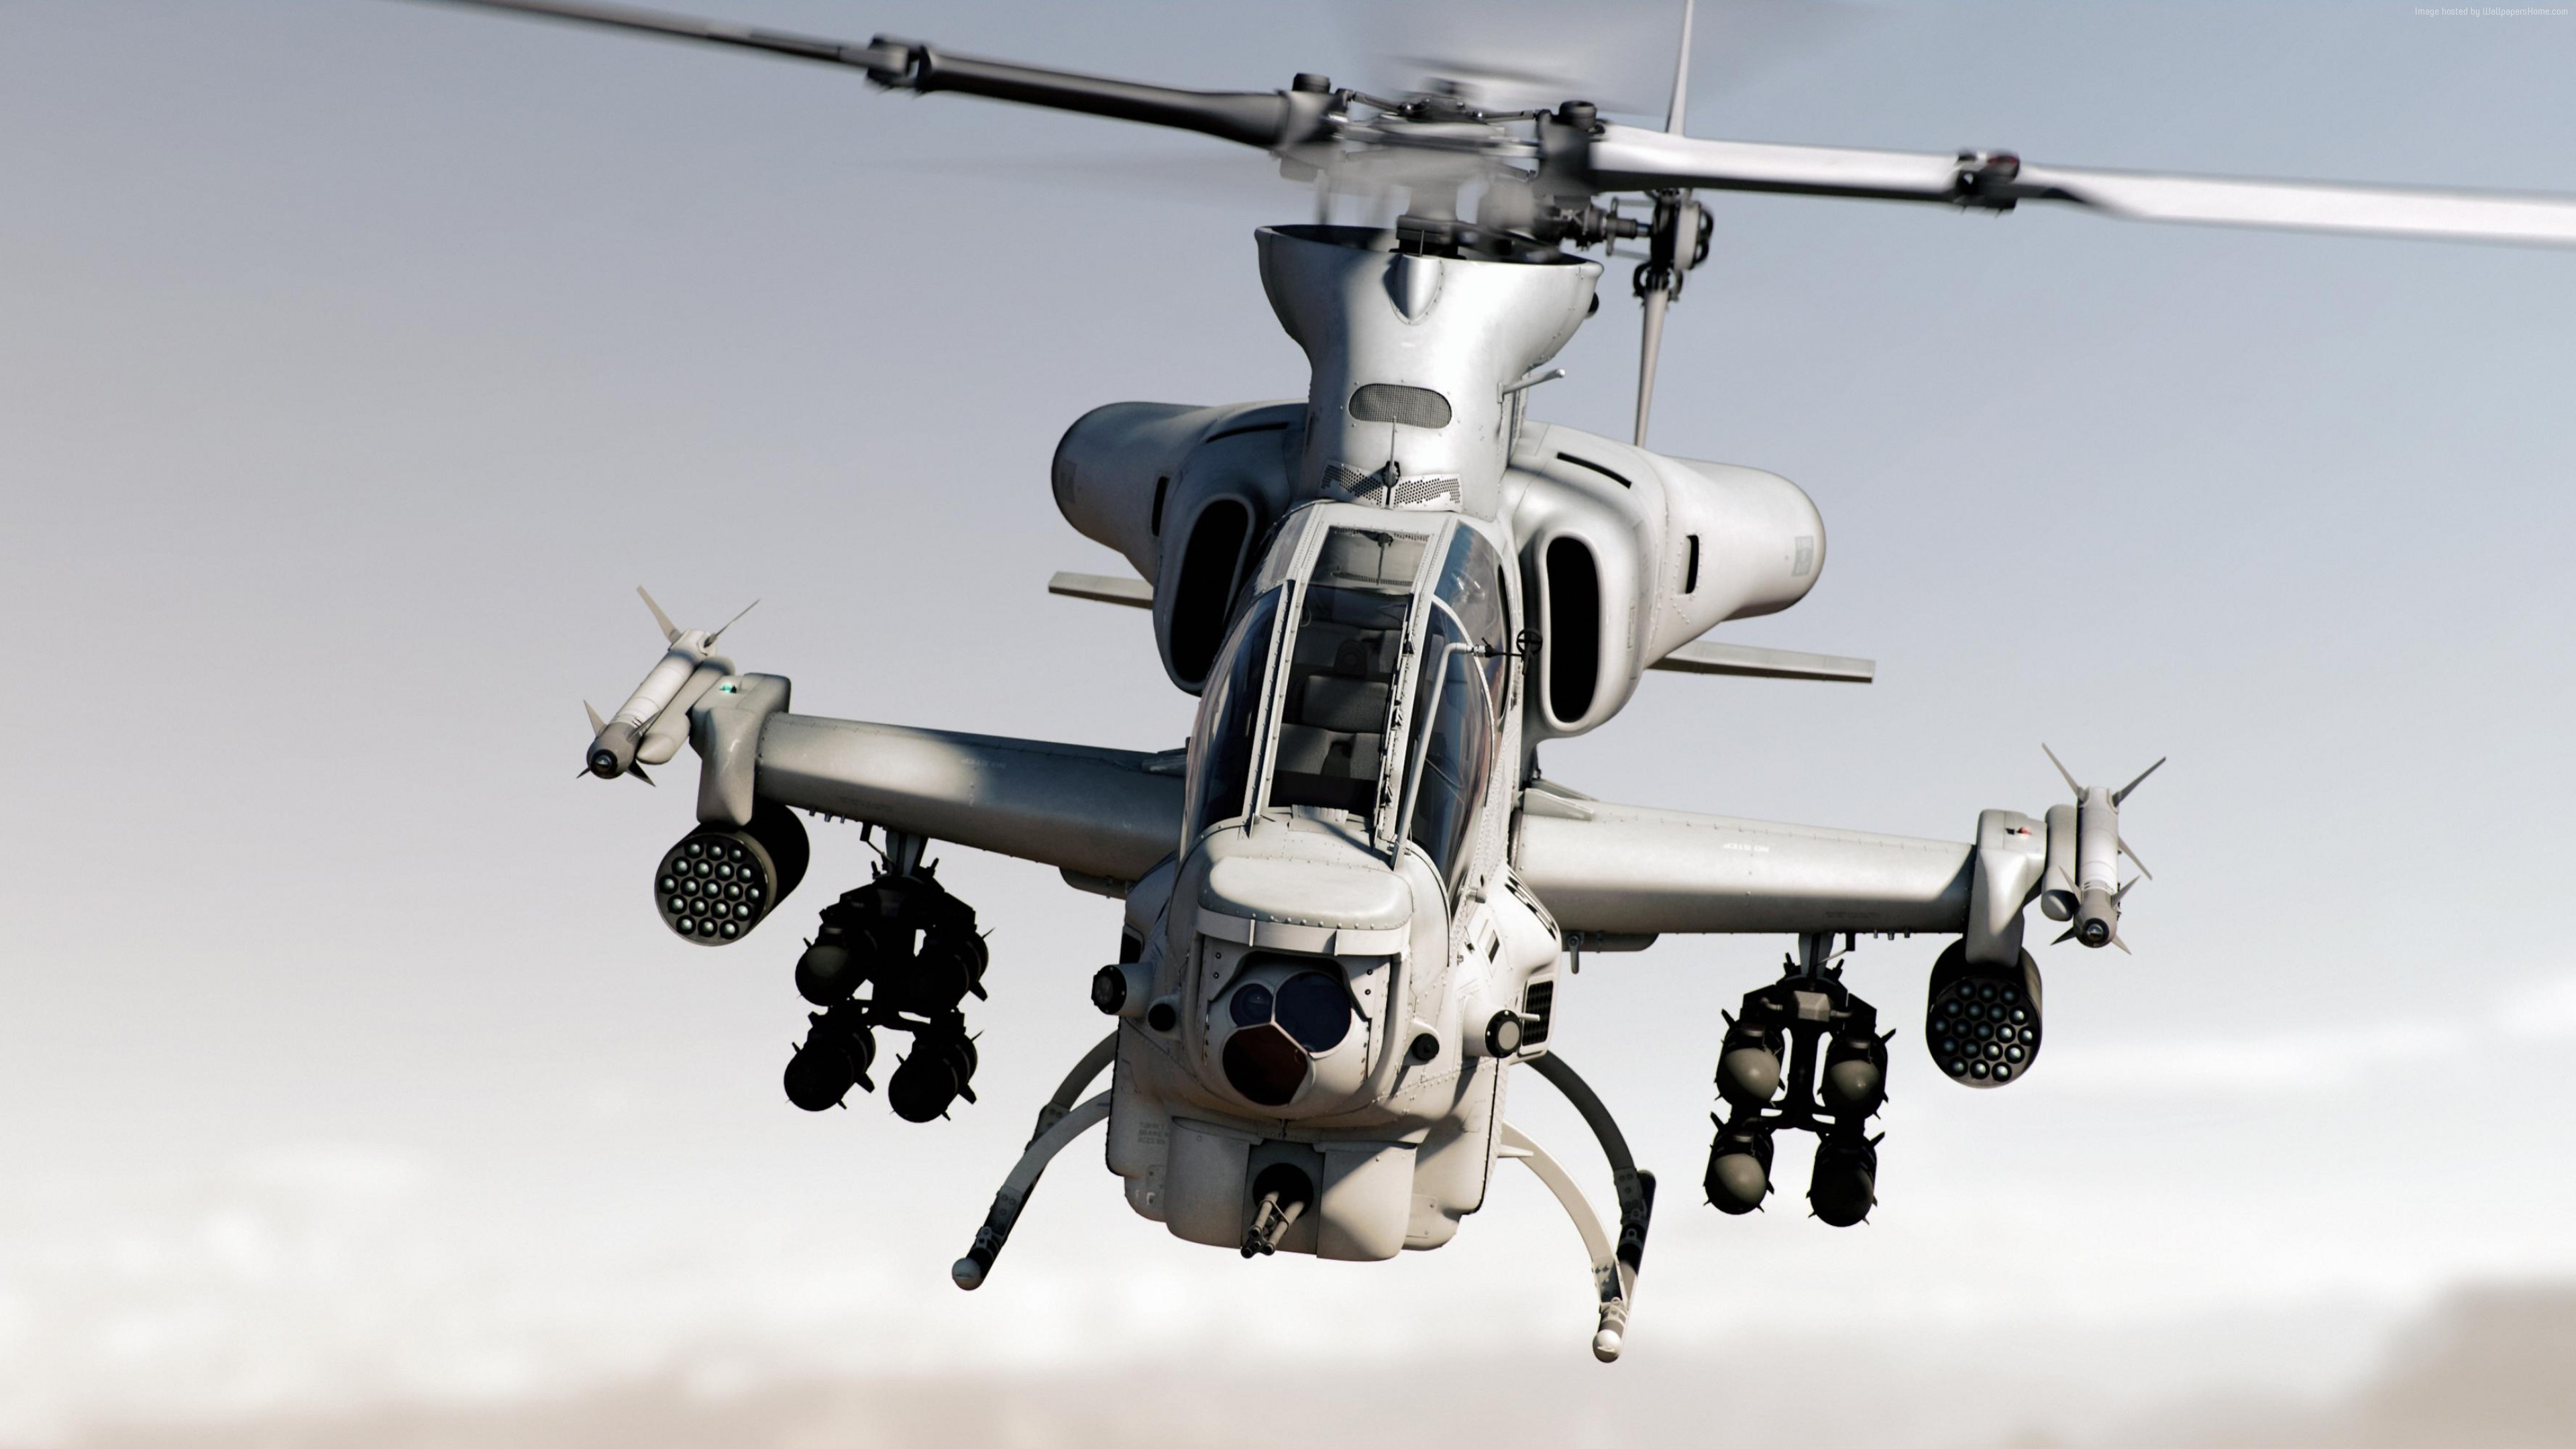 Wallpaper Bell AH-1Z Viper, attack helicopter, U.S. Army, U.S. Air Force, Zulu Cobra, Military